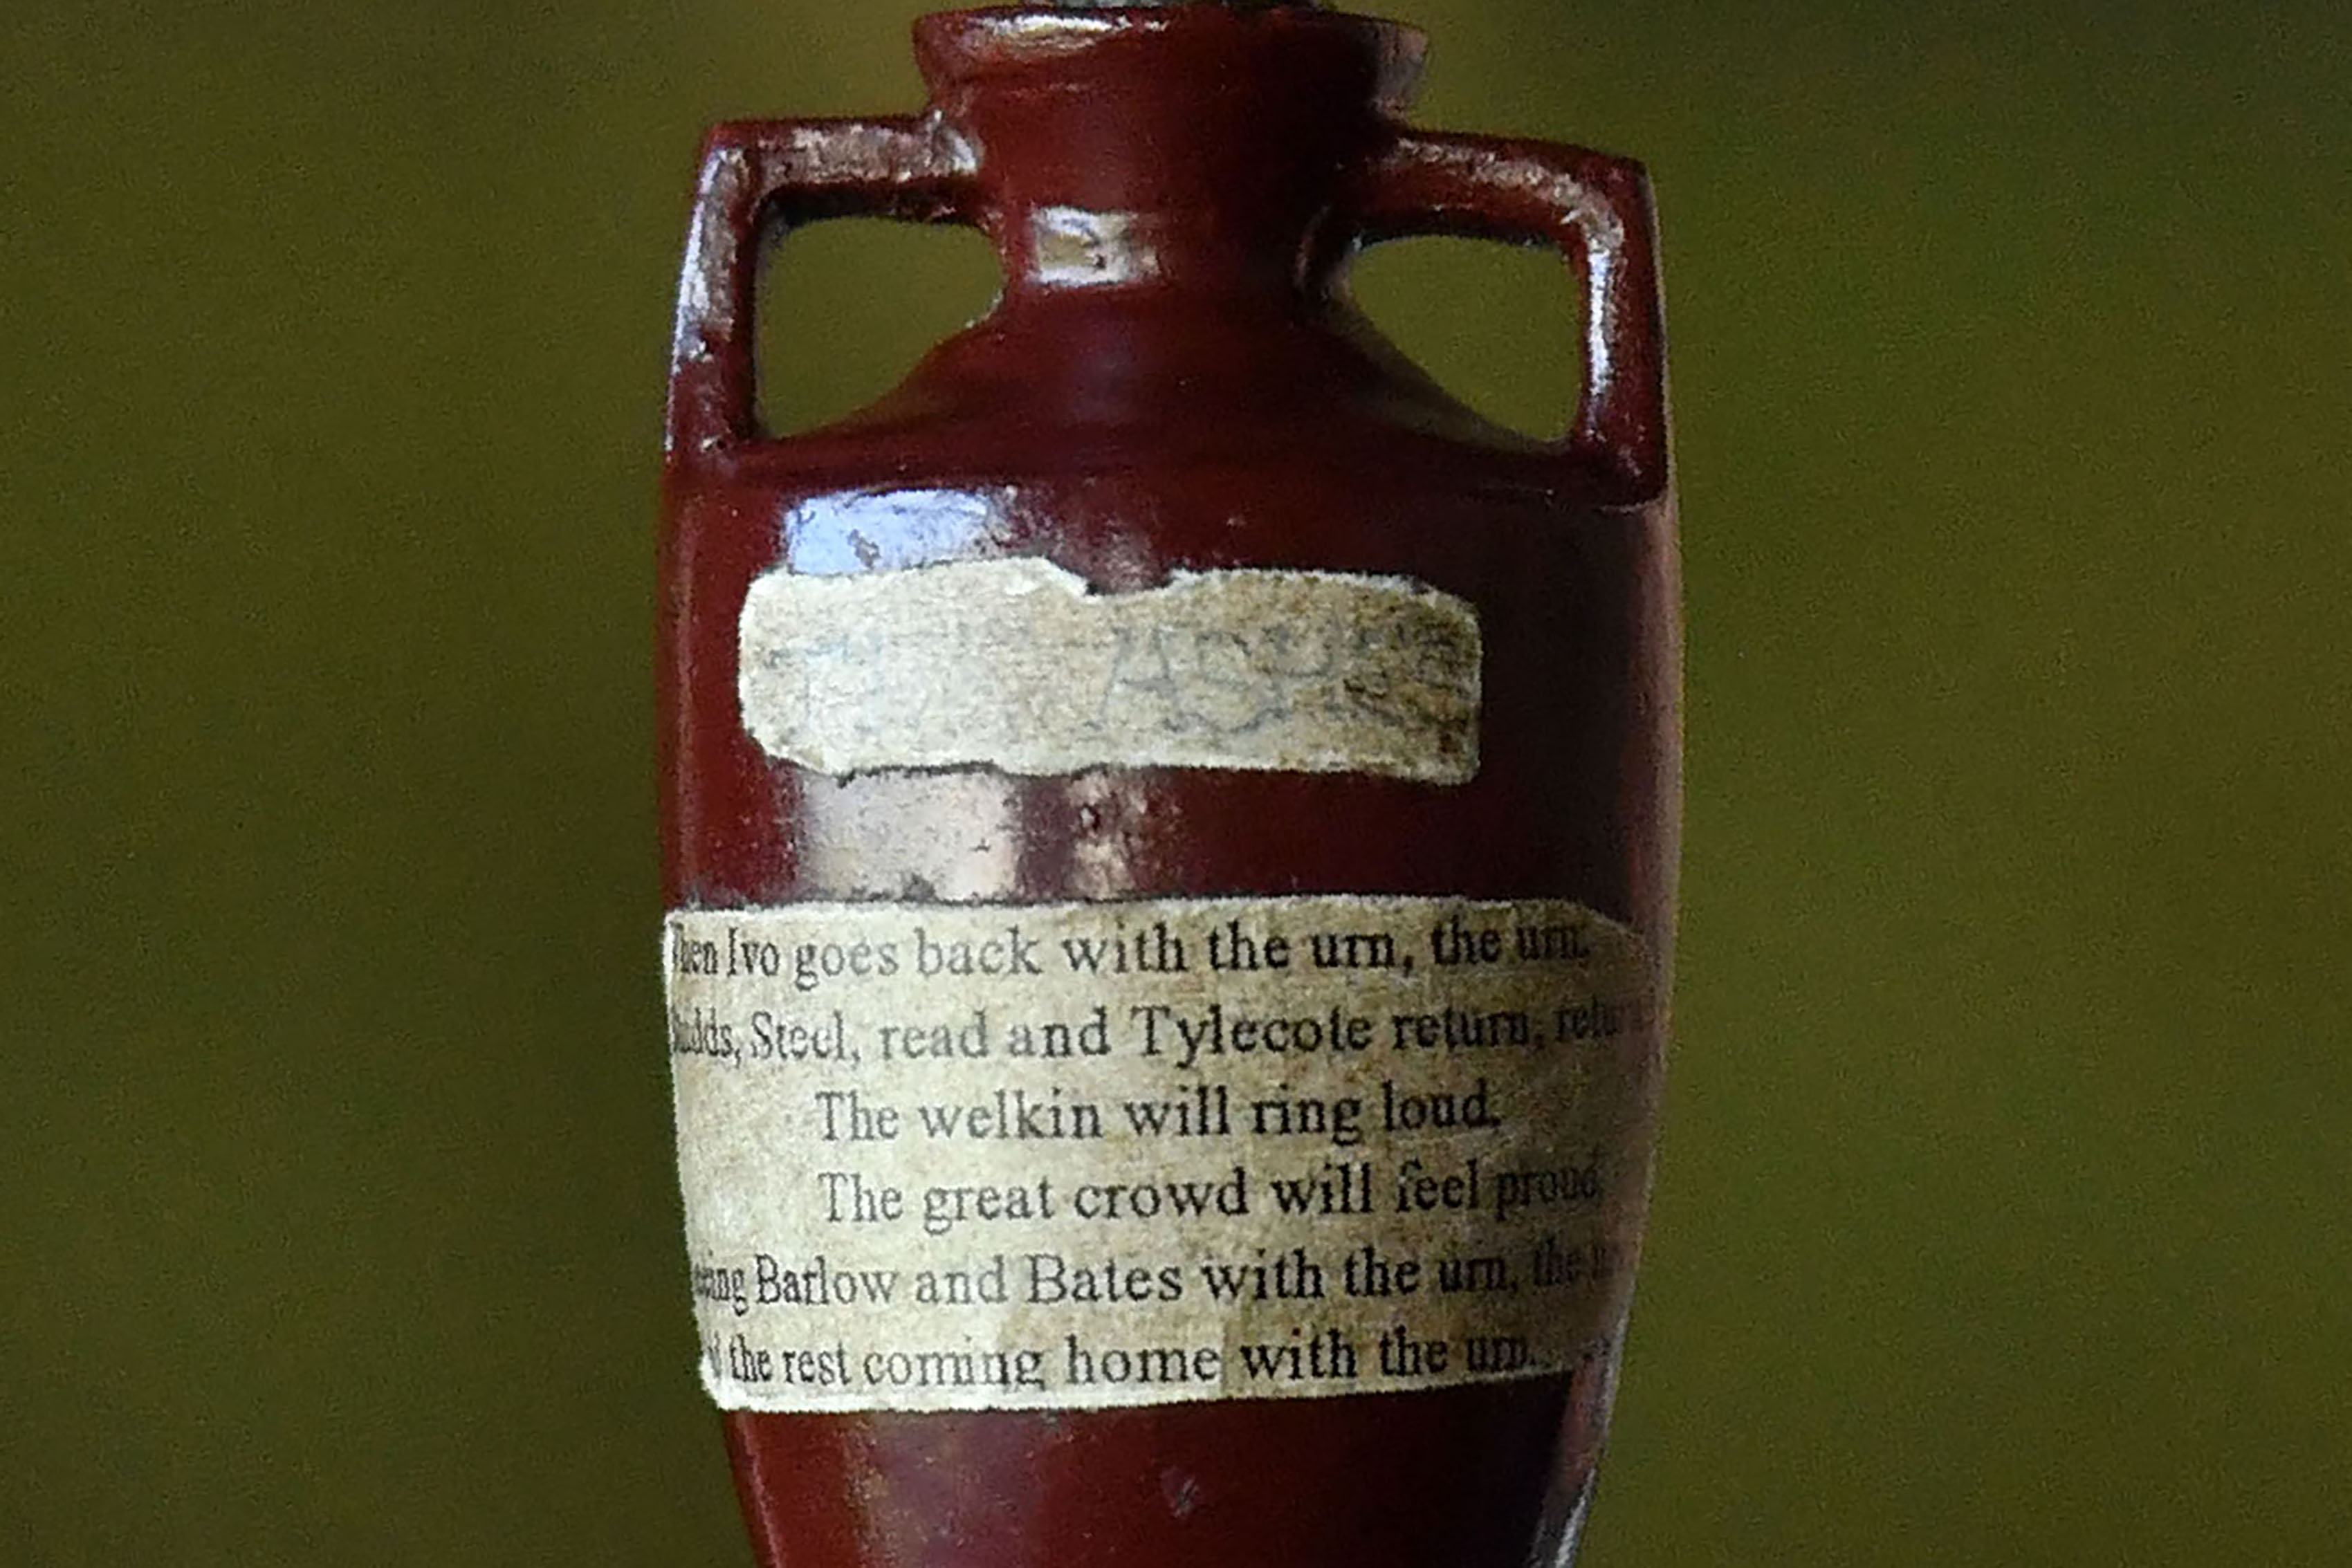 England will look to win the Ashes urn back from Australia